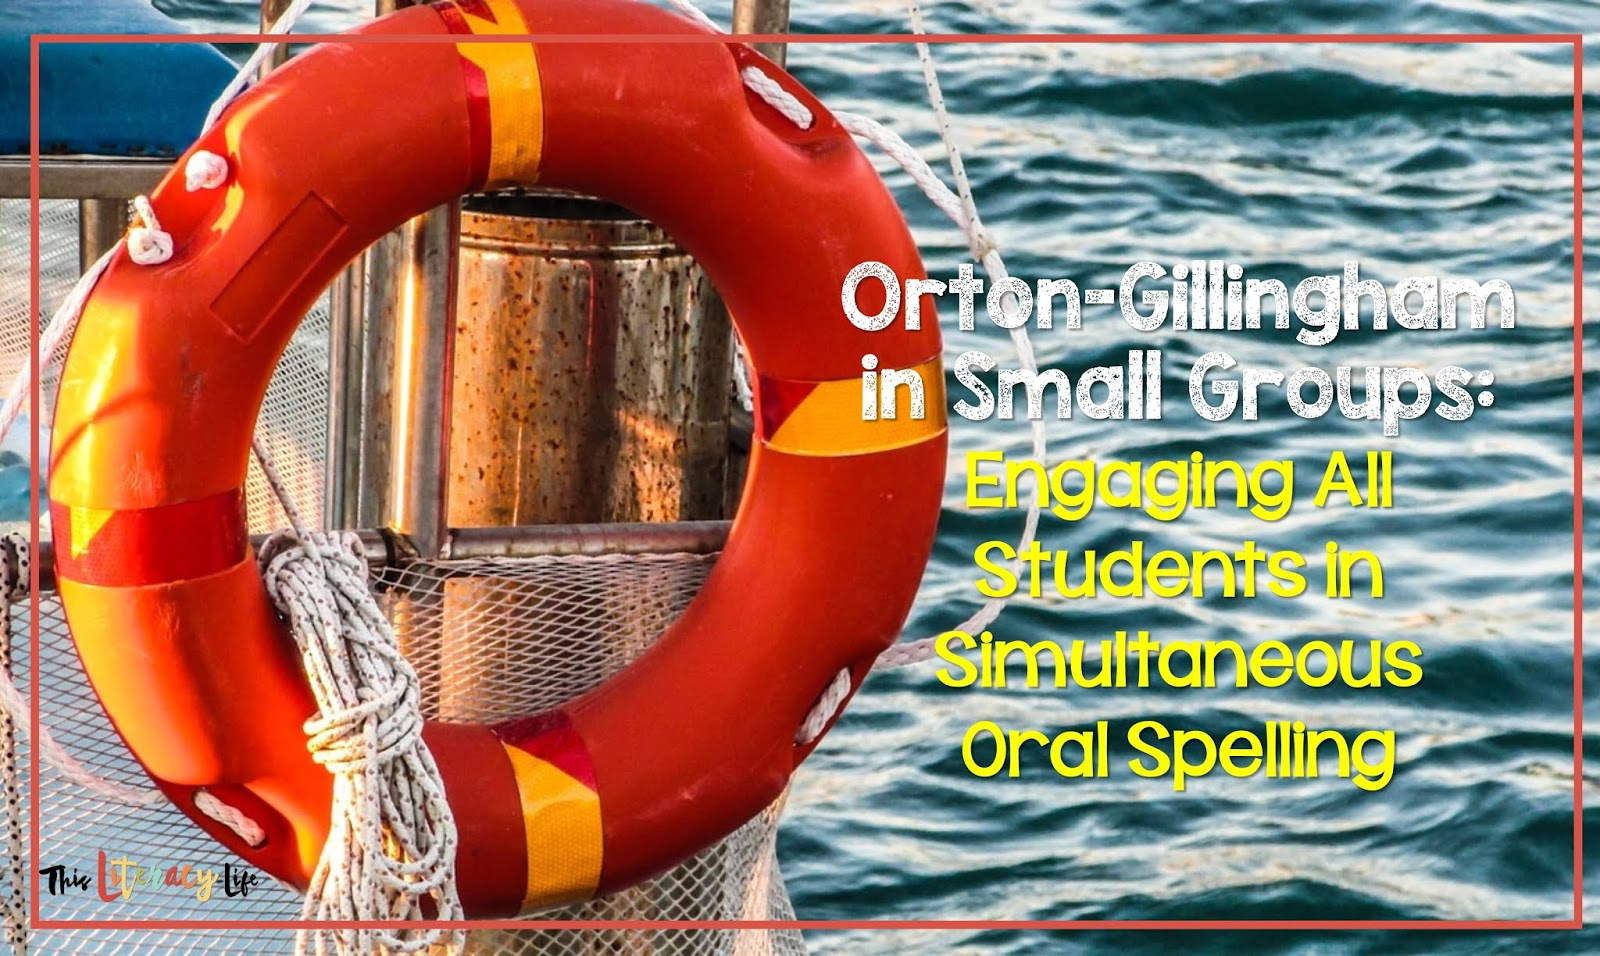 Simultaneous Oral Spelling is the keystone to success with Orton-Gillingham instruction. Keep it exciting with these fun ways to engage students in the process.